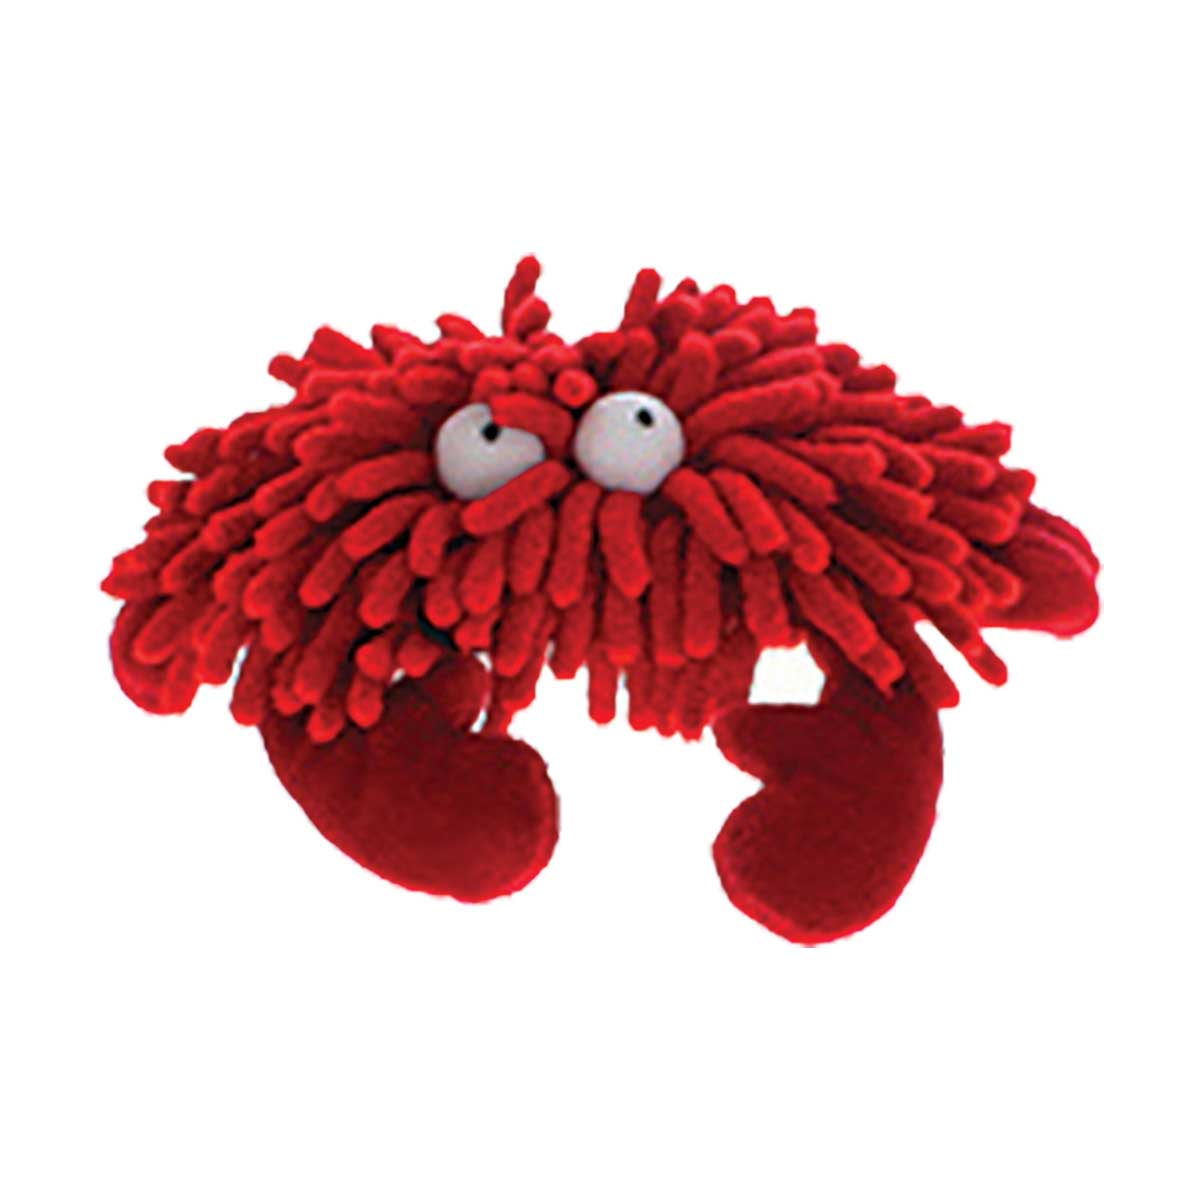 Multipet Sea Shammies Crab Dog Toy - 7 inch